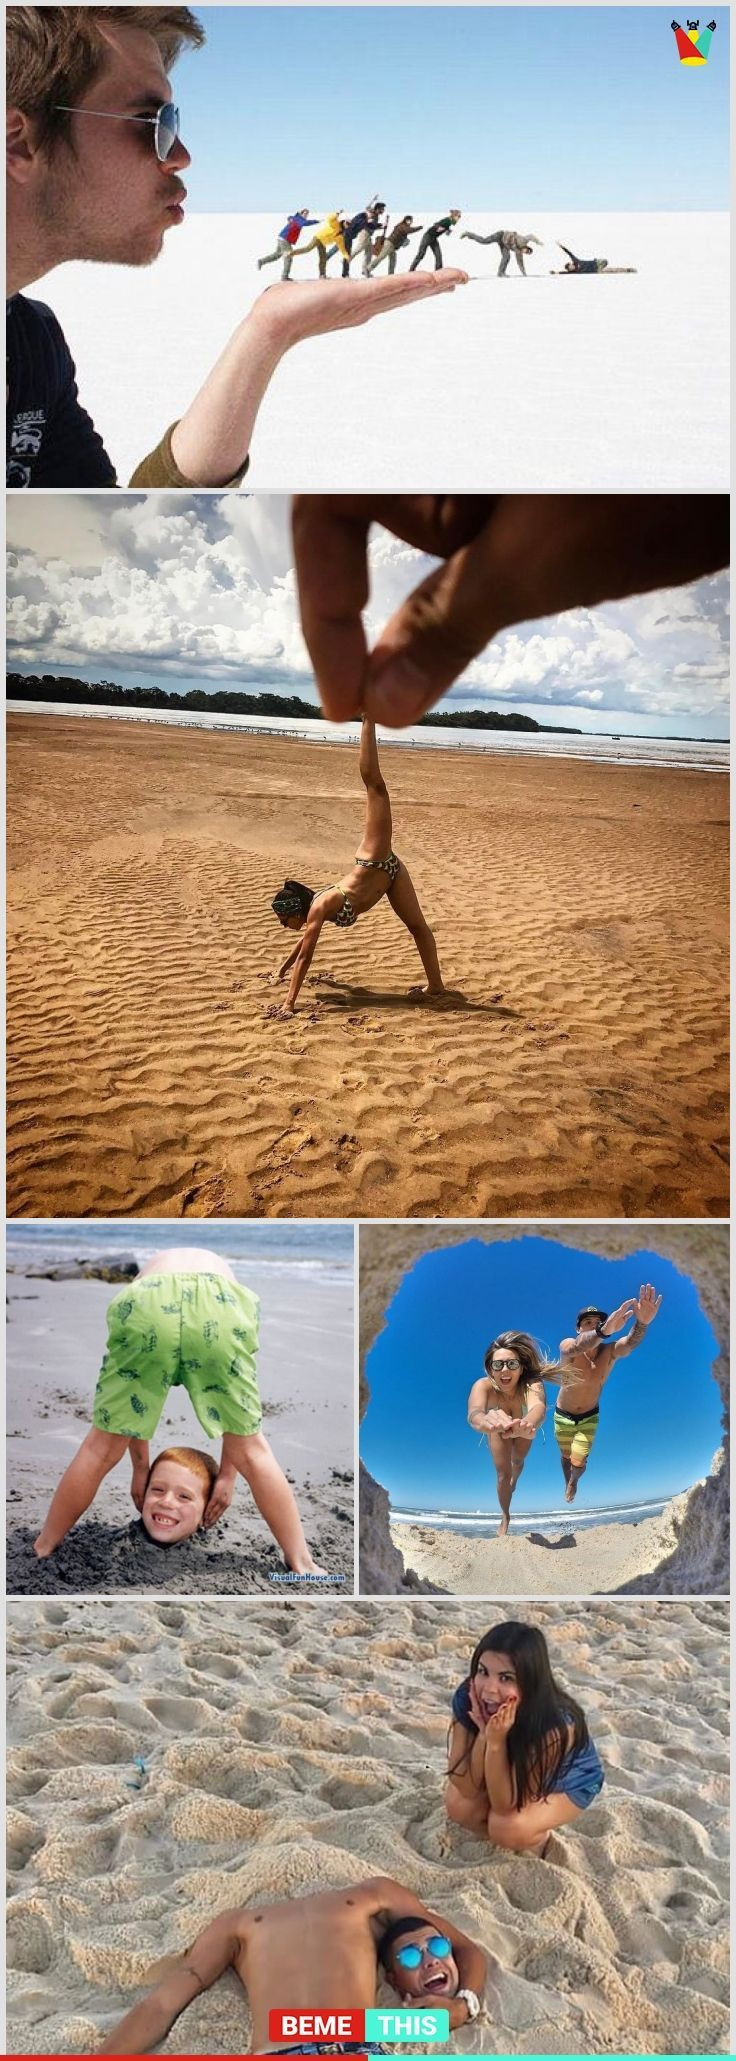 Here Are 16 Cool And Creative ideas For Your Memorable Vacation Photos